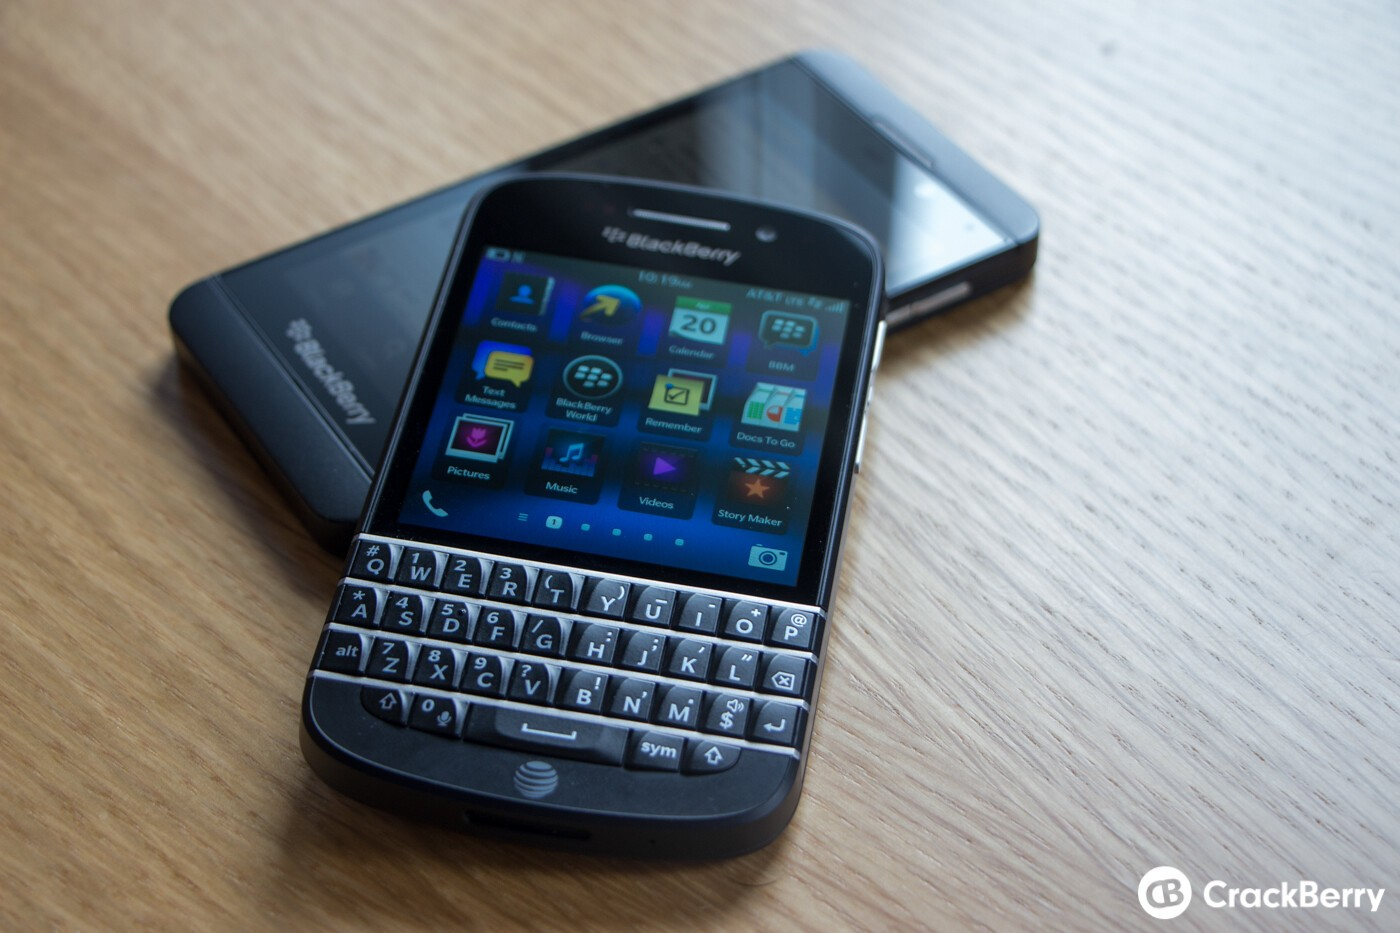 BlackBerry's President of Enterprise talks about why they're